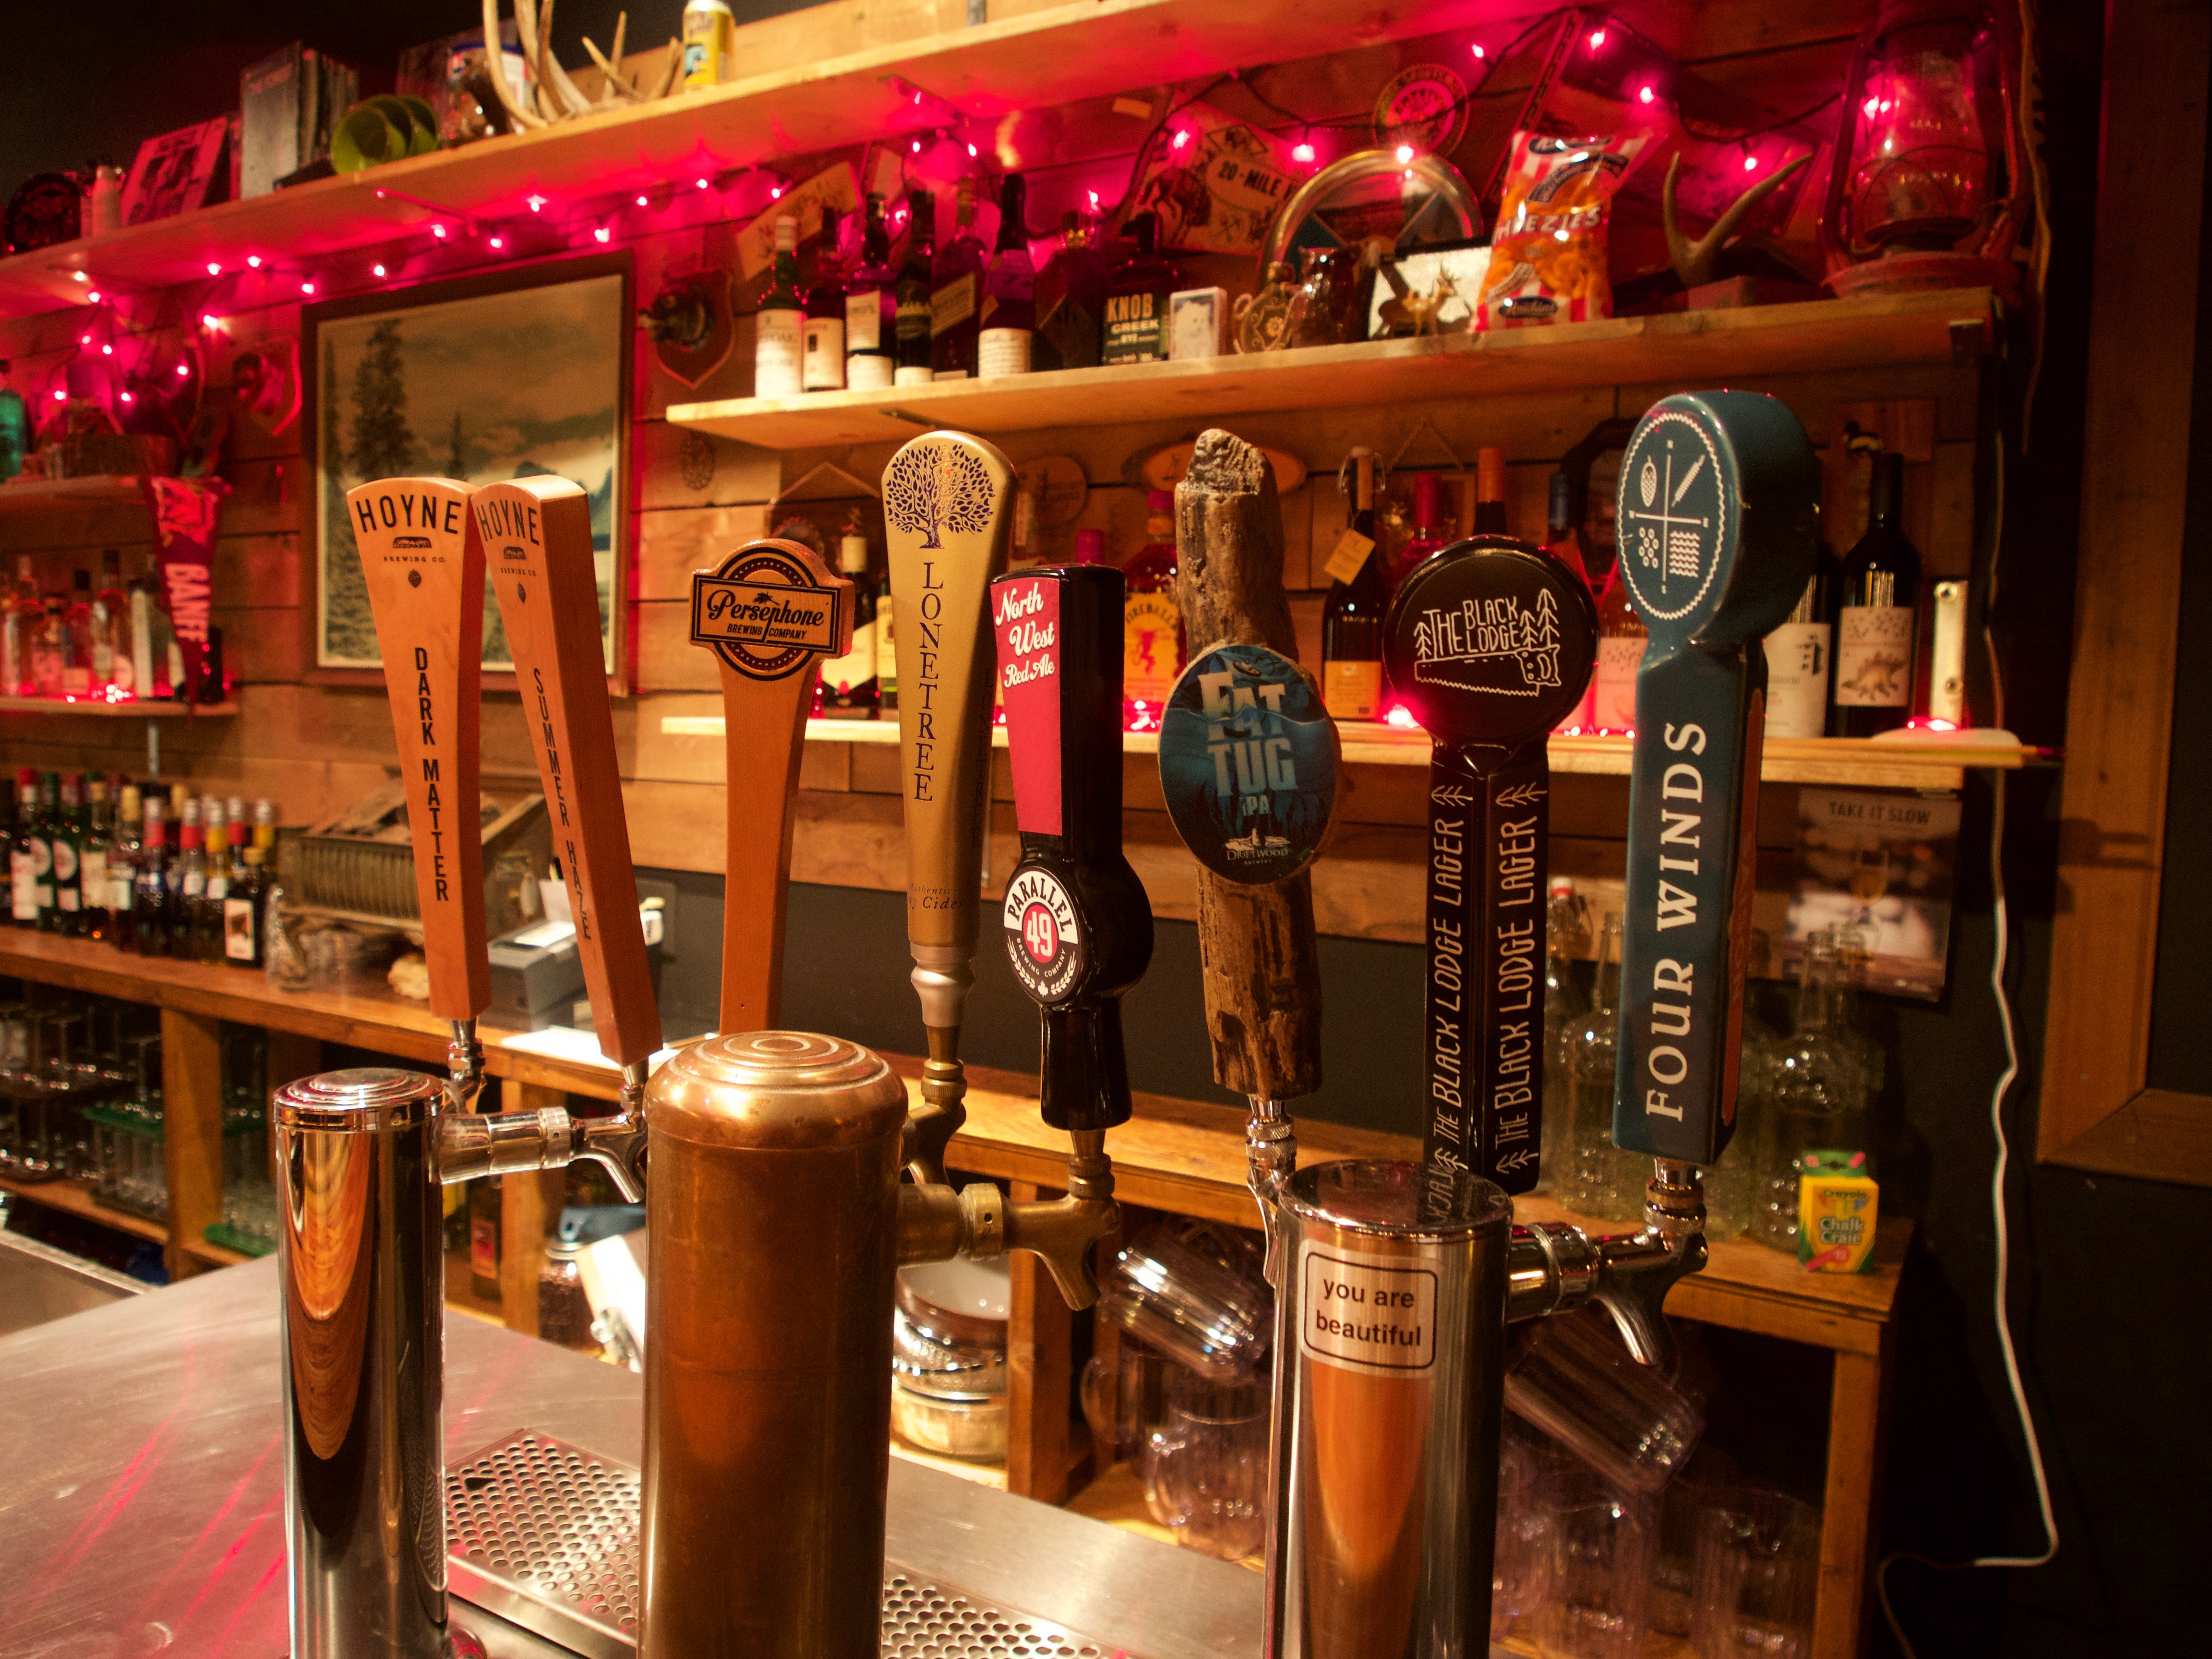 Beers on tap at the Black Lodge in Vancouver, British Columbia as part of the Dirt Road Travels city guide.